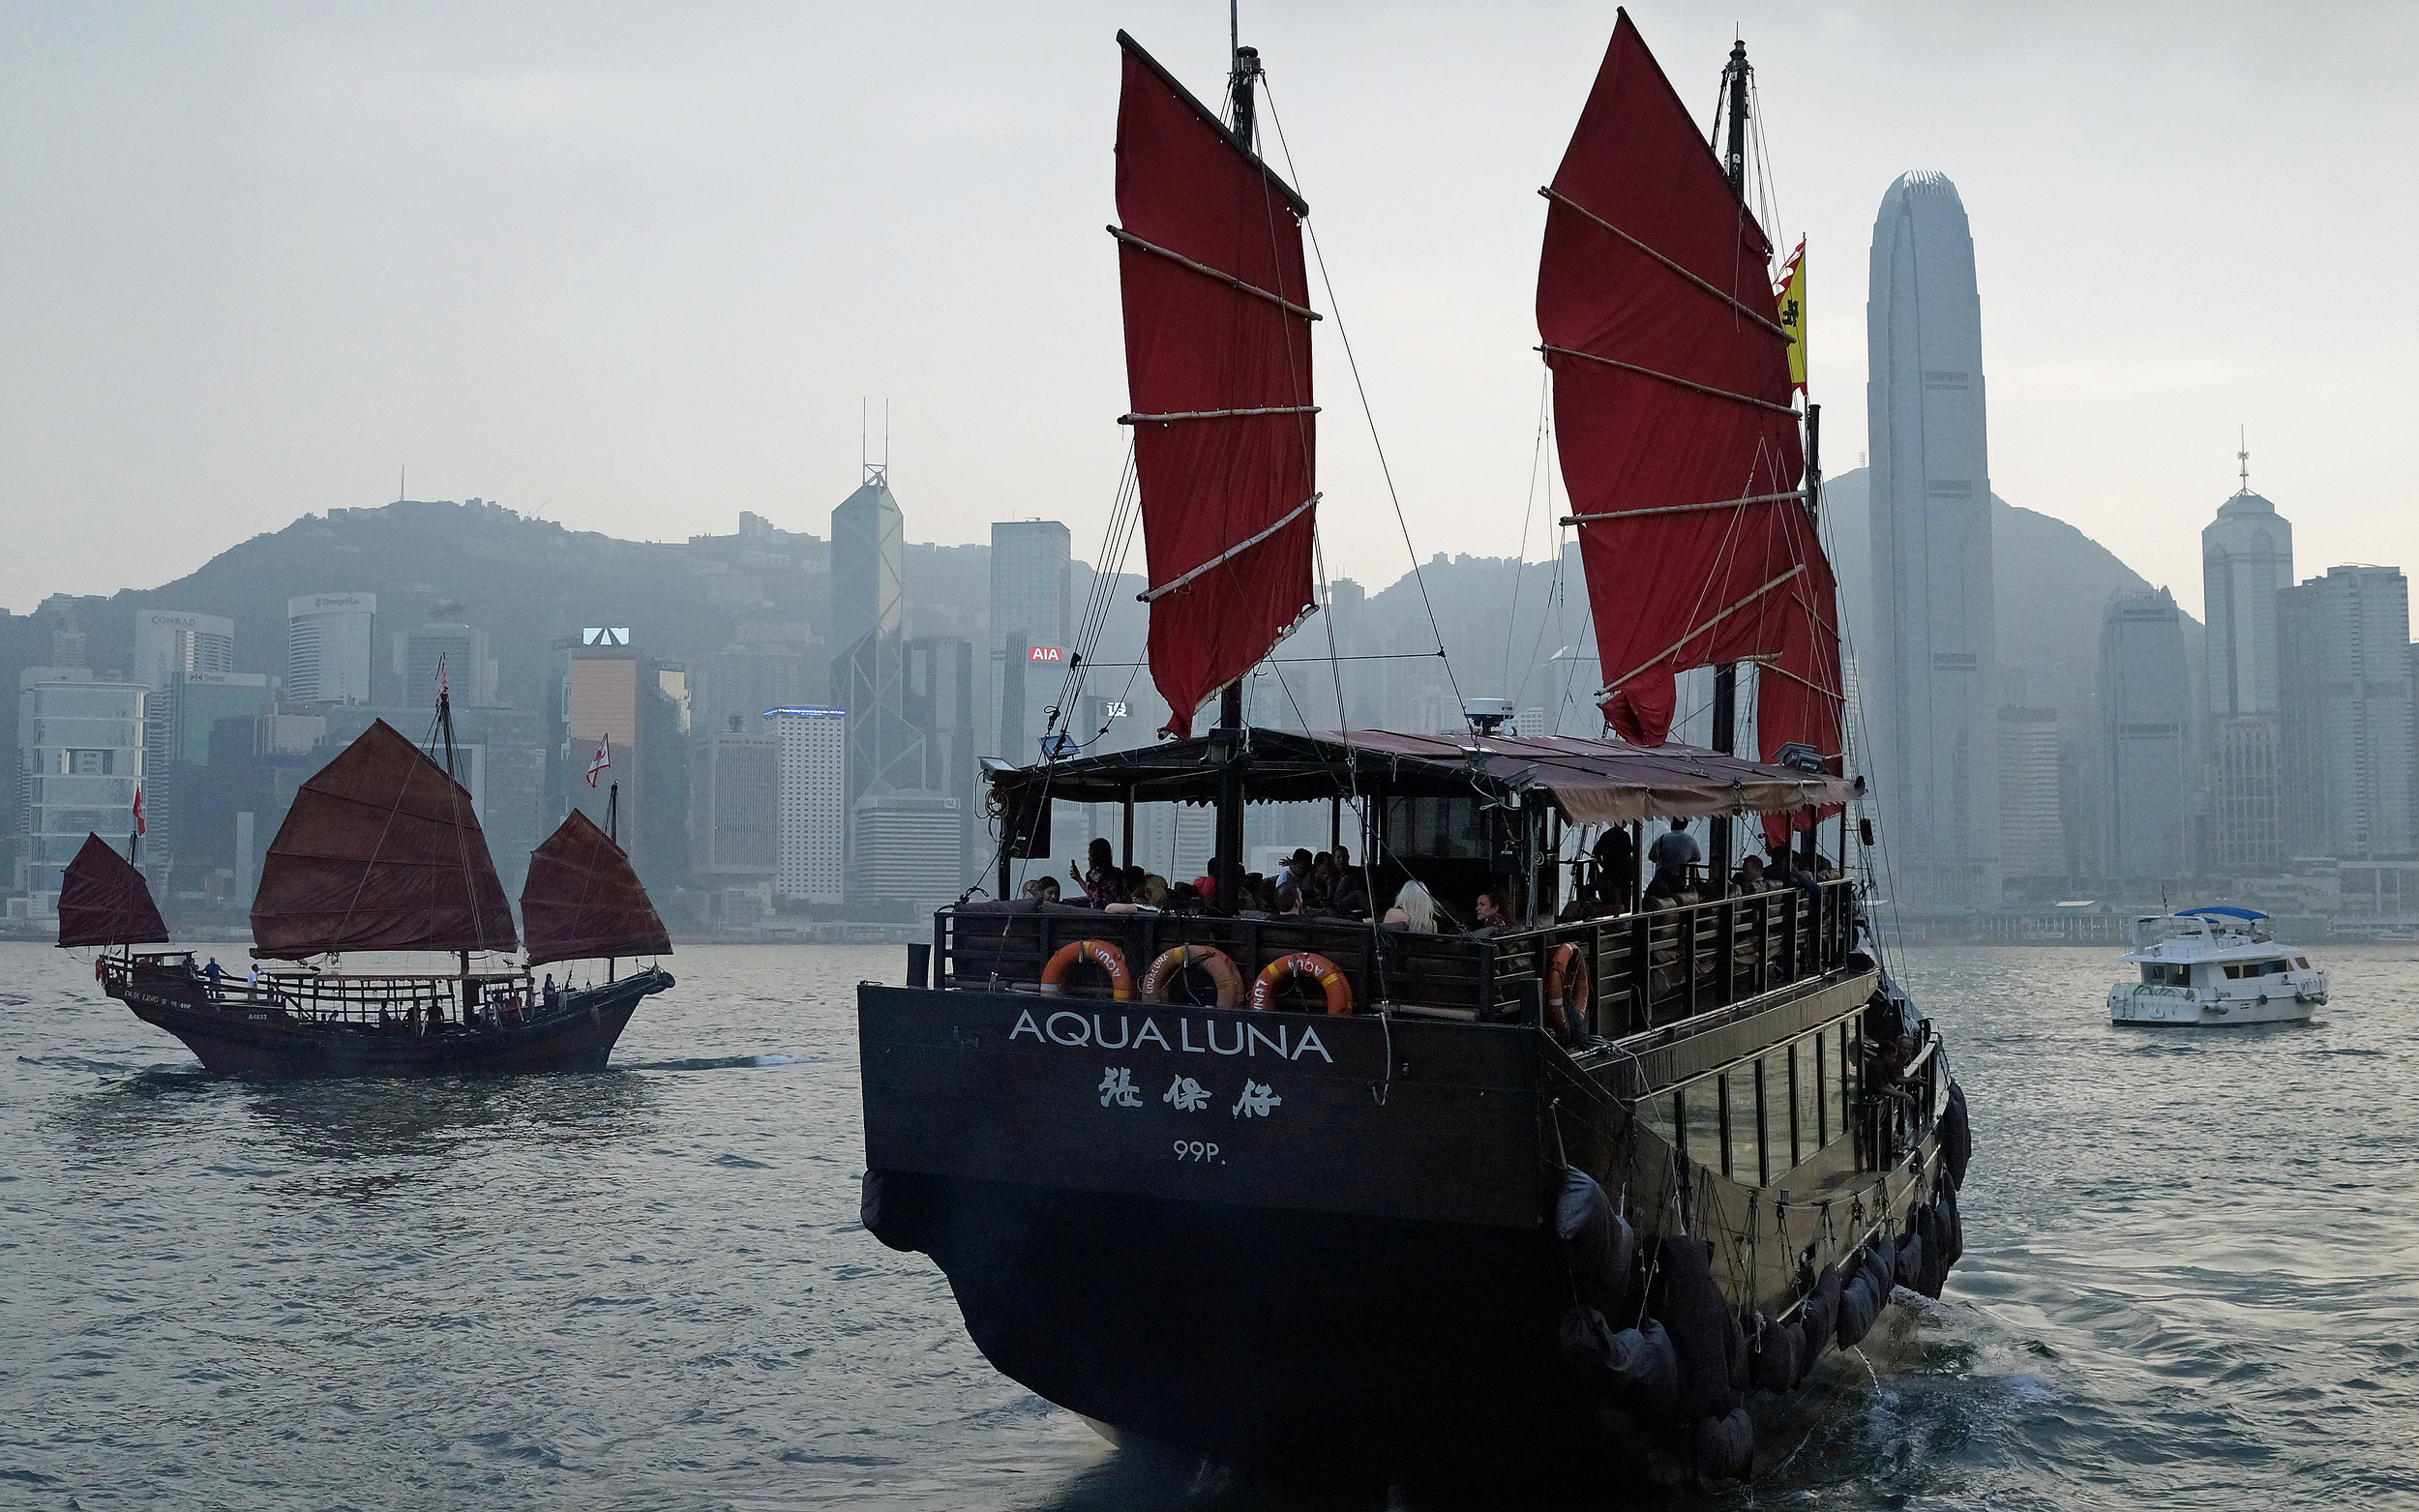 The Aqua Luna is everyone's favourite fishing junk for puttering around Hong Kong Harbour -